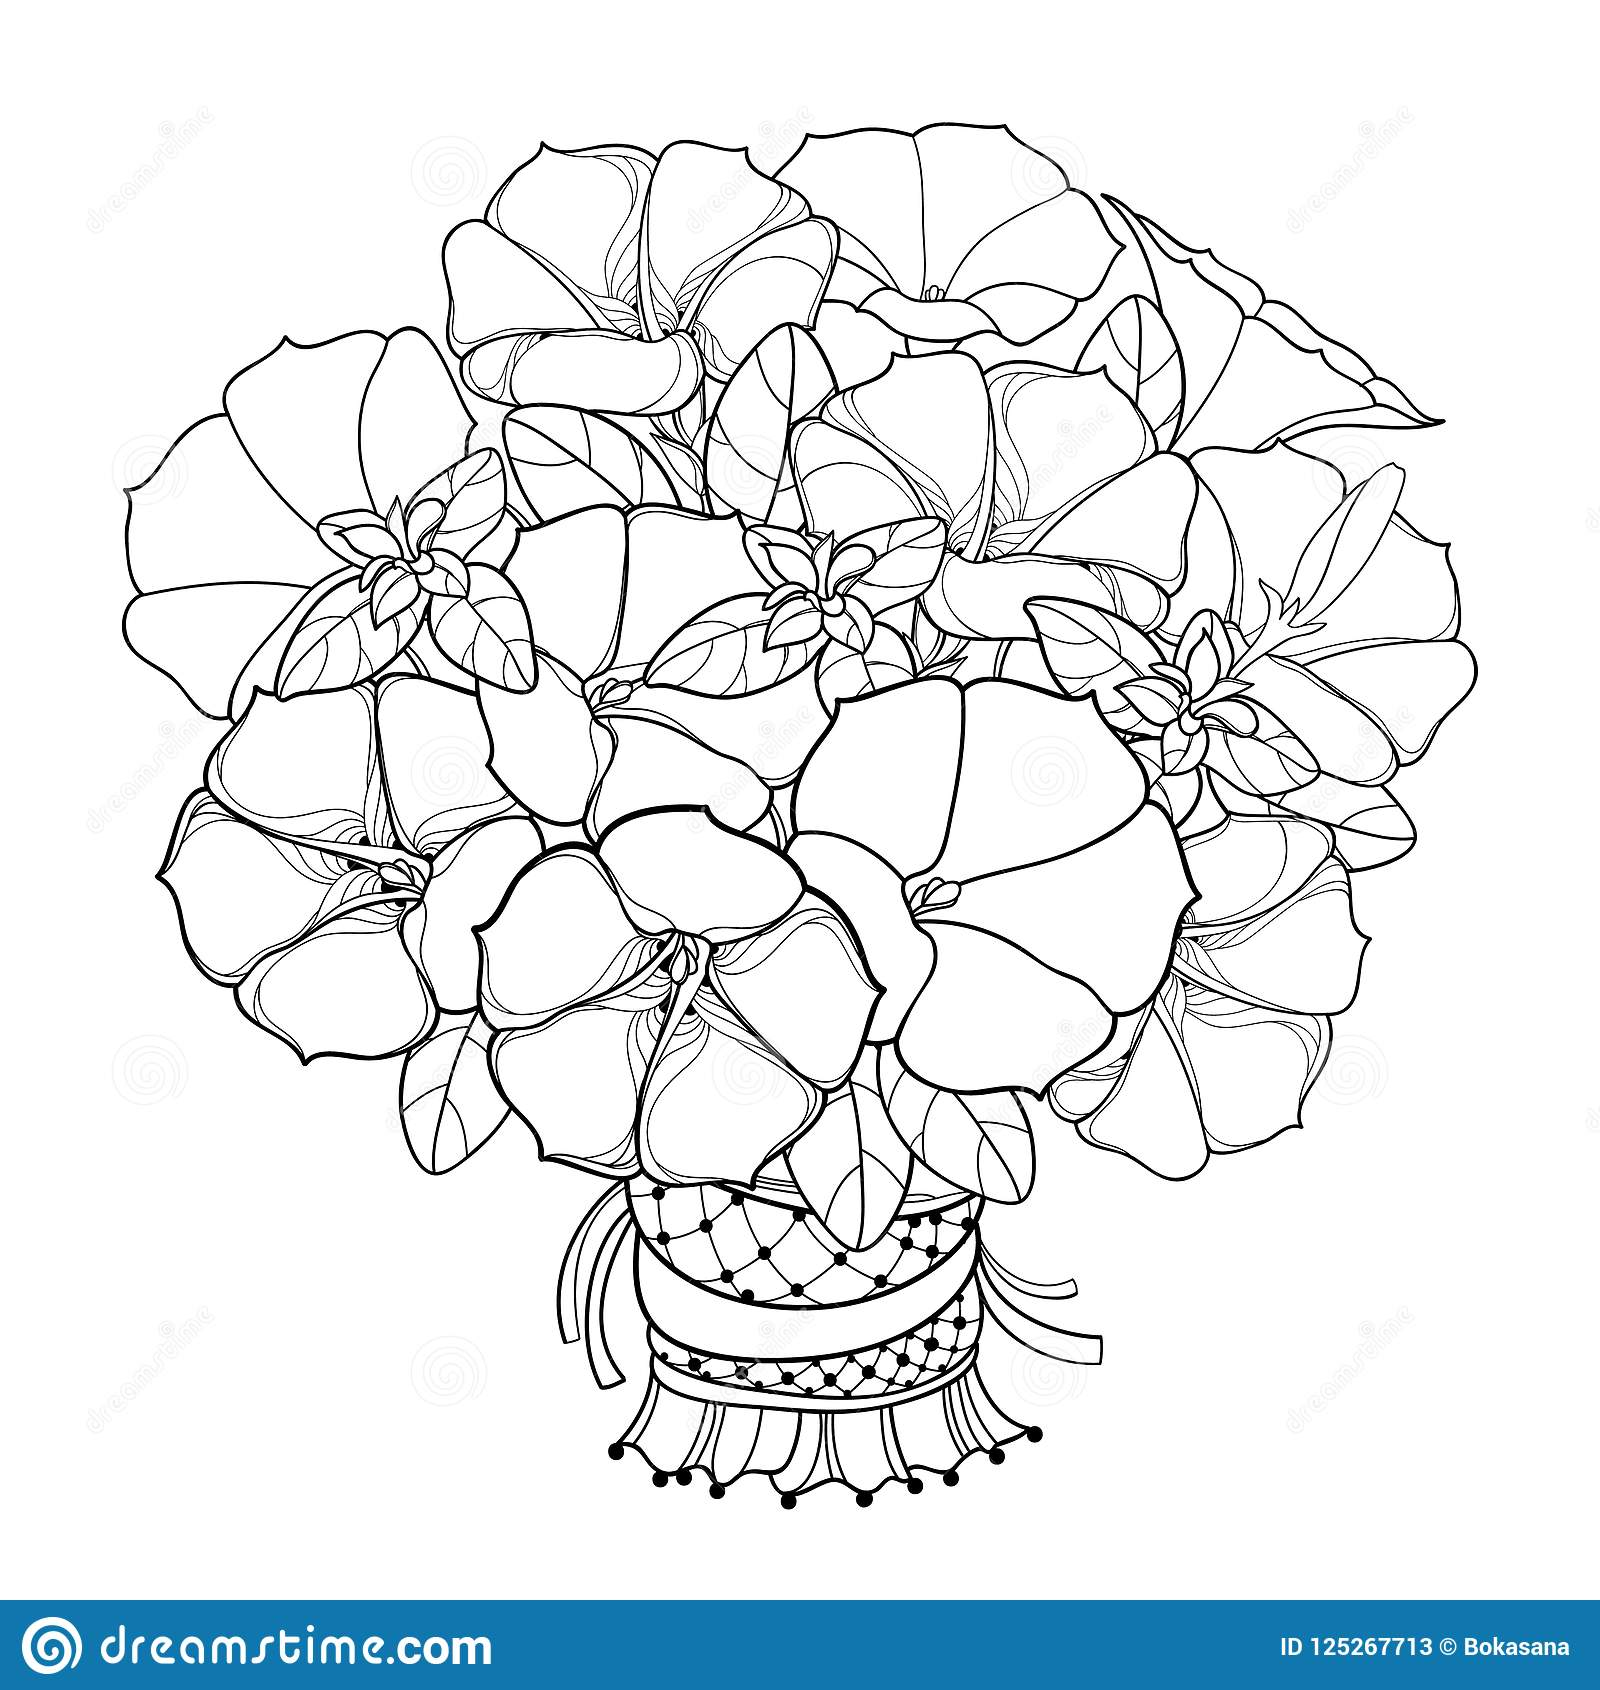 Vector bouquet with outline petunia flower ornate leaf and bud in download vector bouquet with outline petunia flower ornate leaf and bud in black isolated on izmirmasajfo